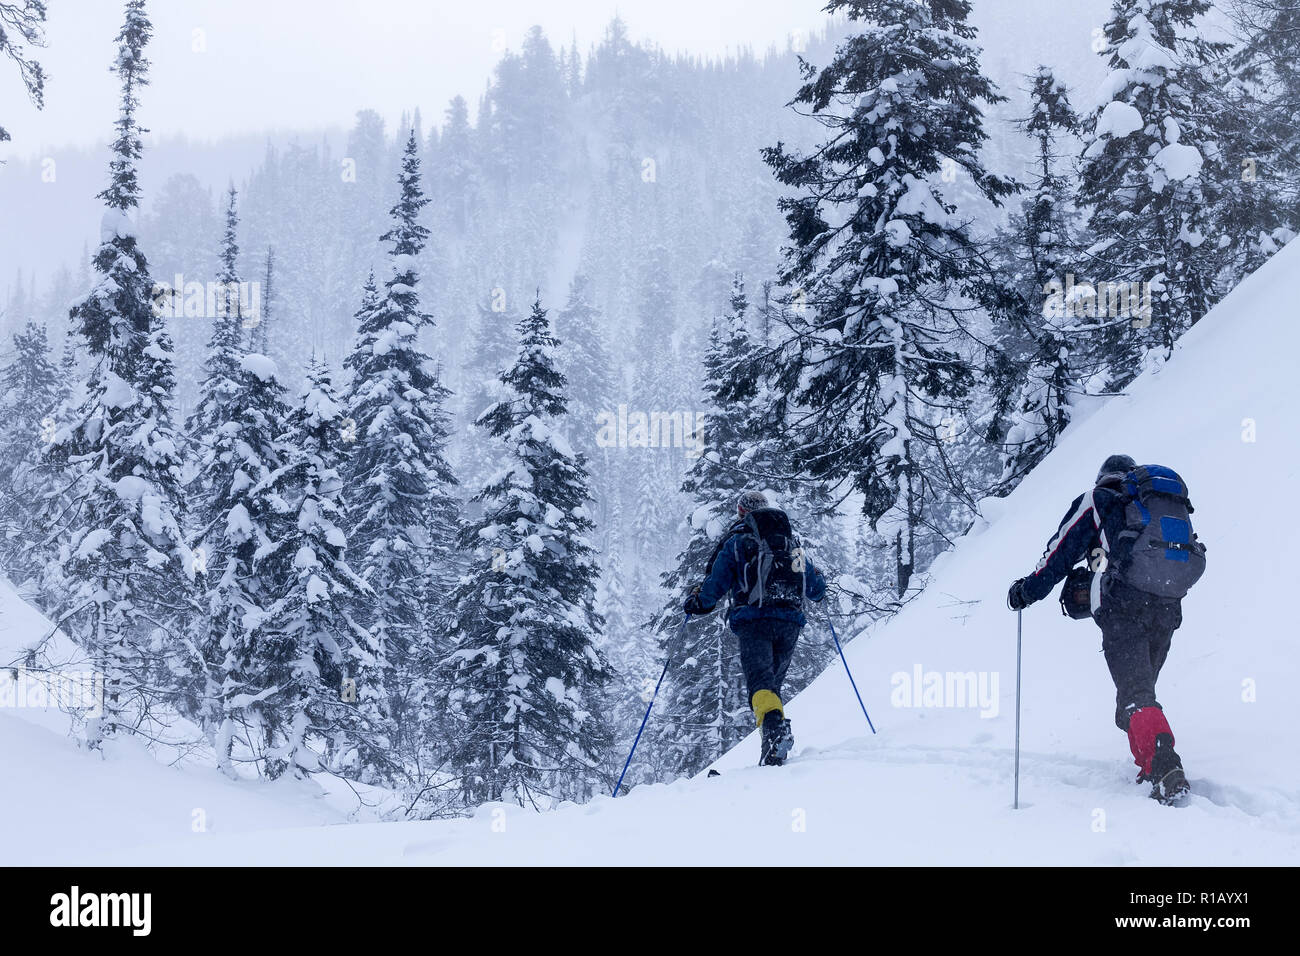 A skier walks in the mountains Stock Photo